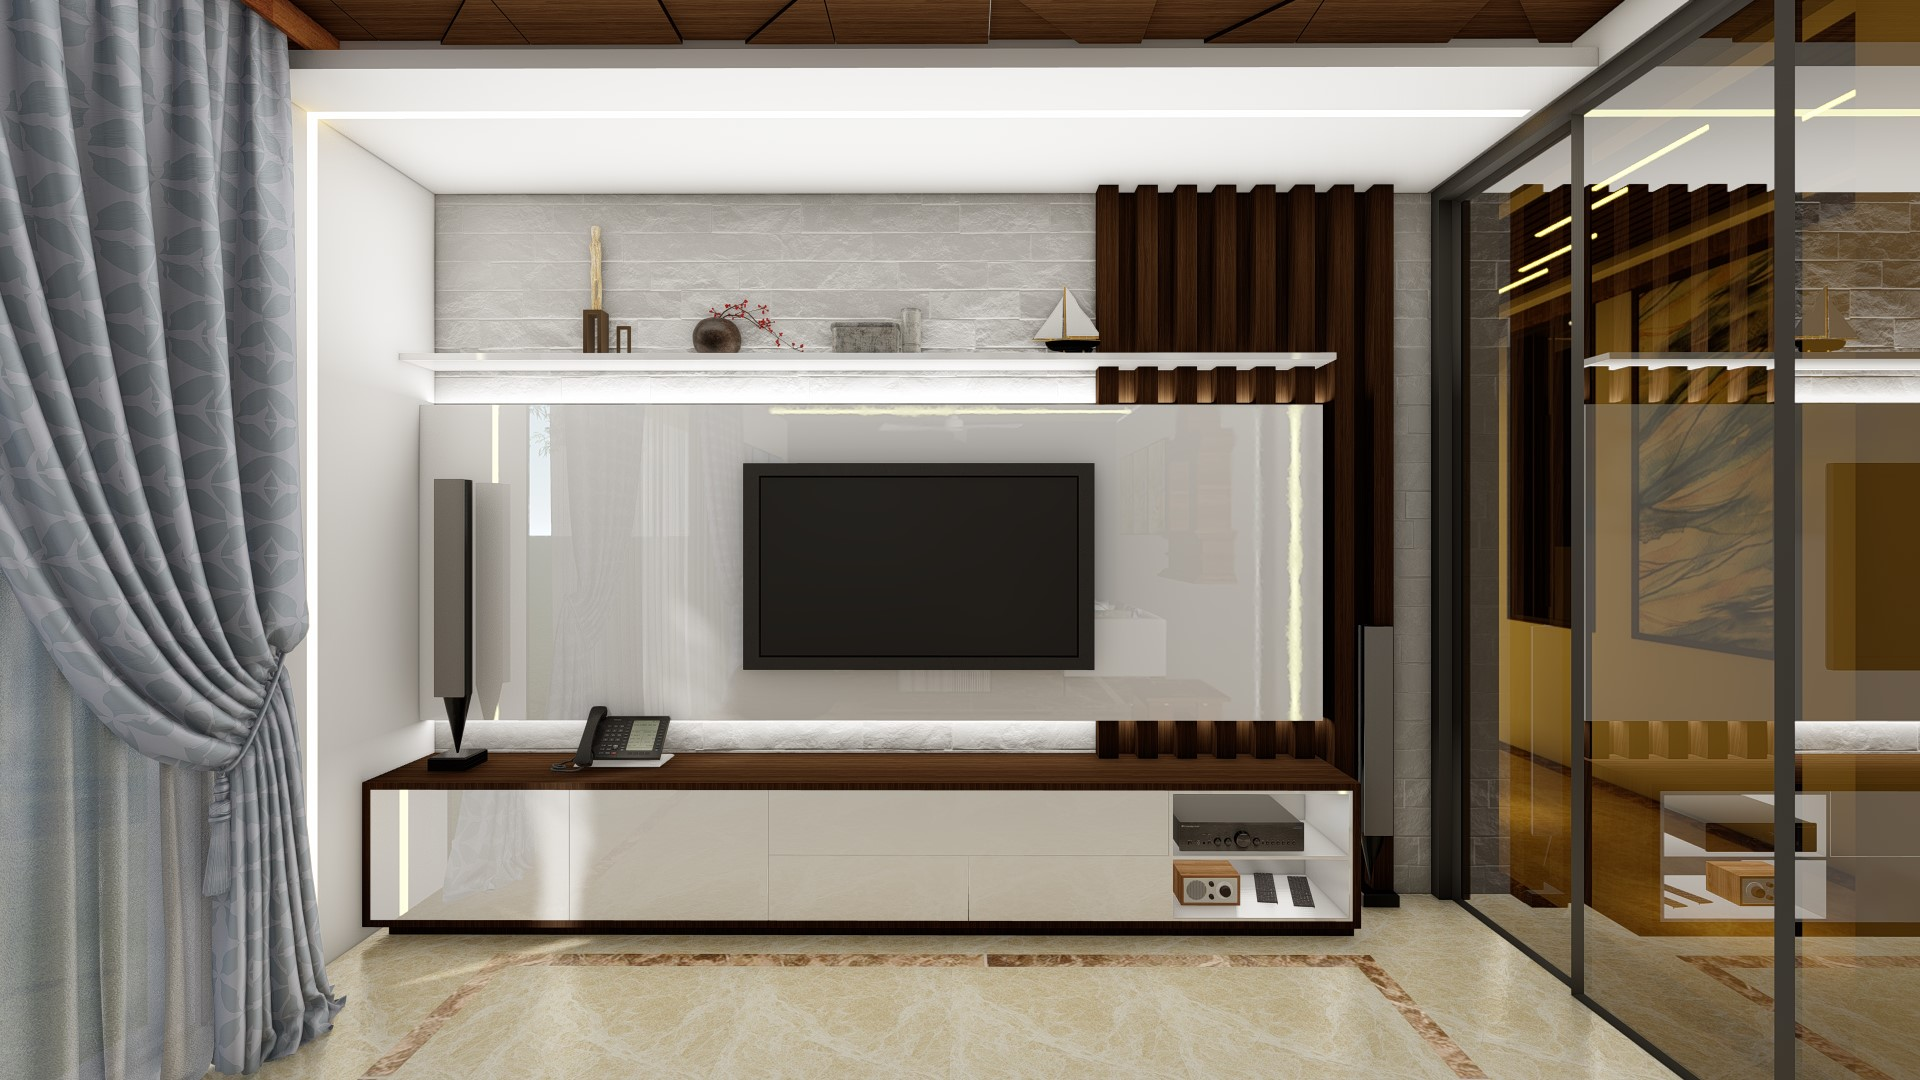 Trying To Renovate Your Home? Then Take Help Of Expert Interior Designer In Hyderabad